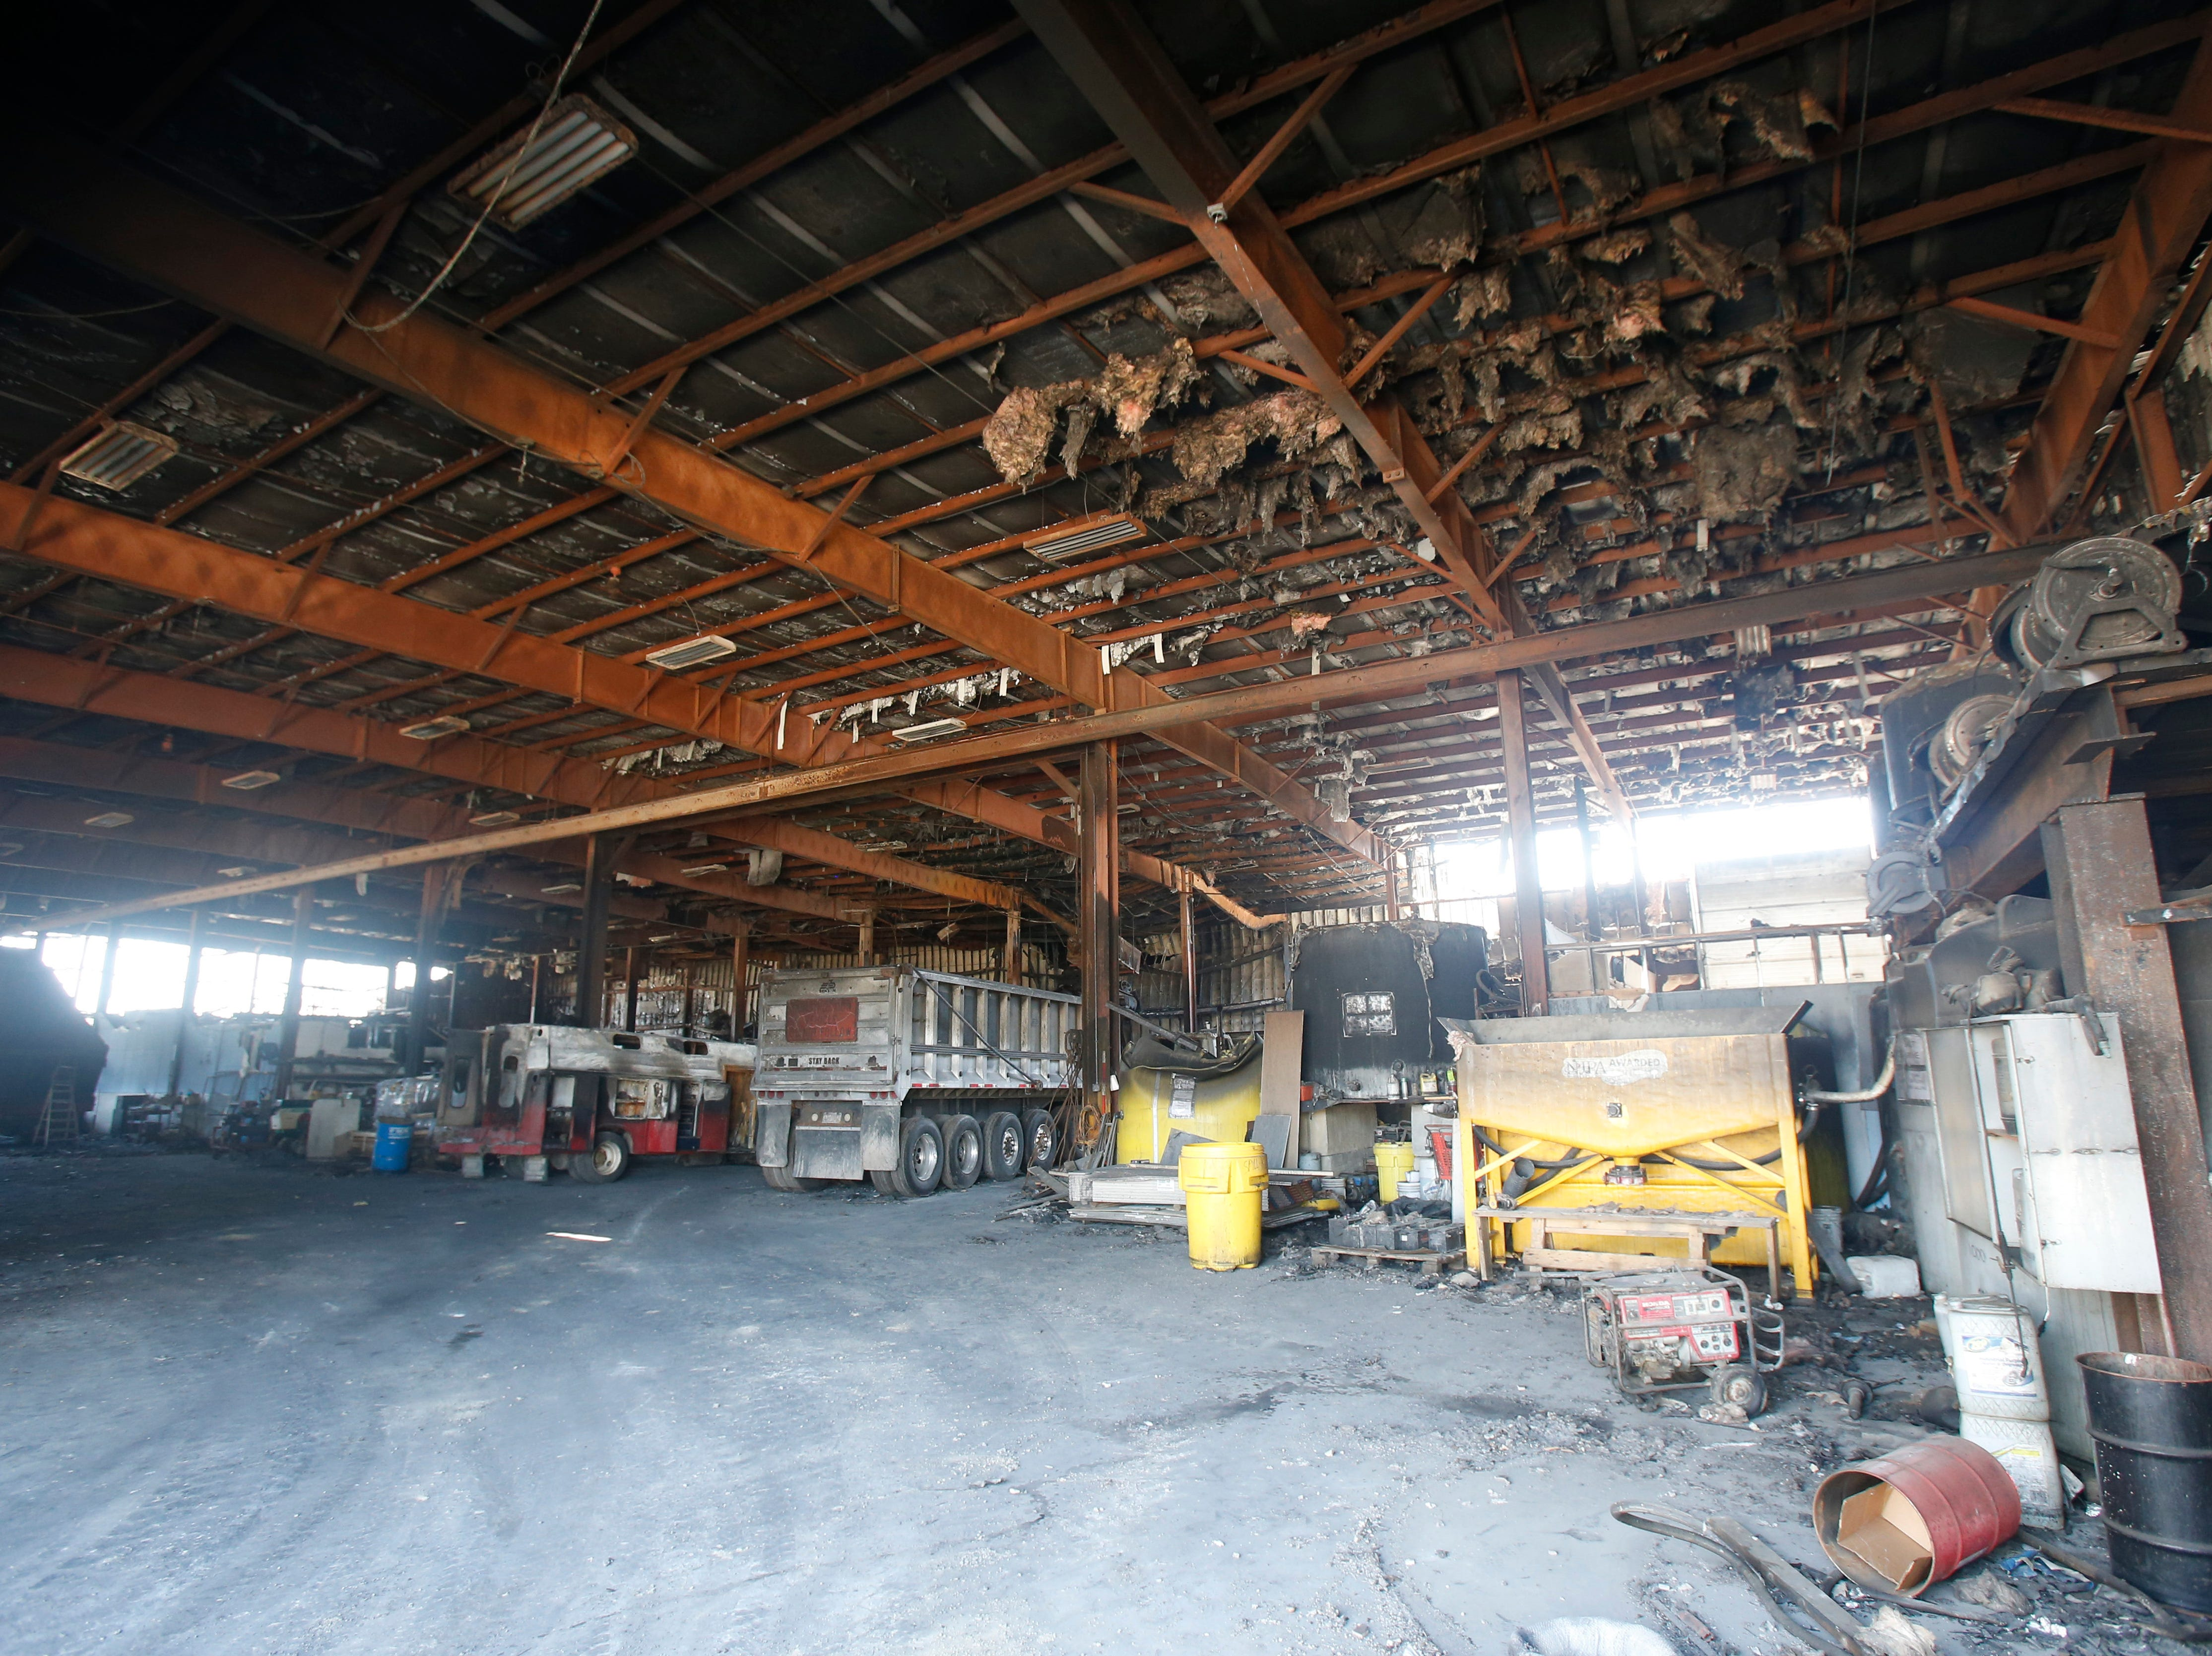 Inside Gleason Incorporated's building in the Town of Poughkeepsie on April 17, 2019. A fire in March damaged the building beyond repair.